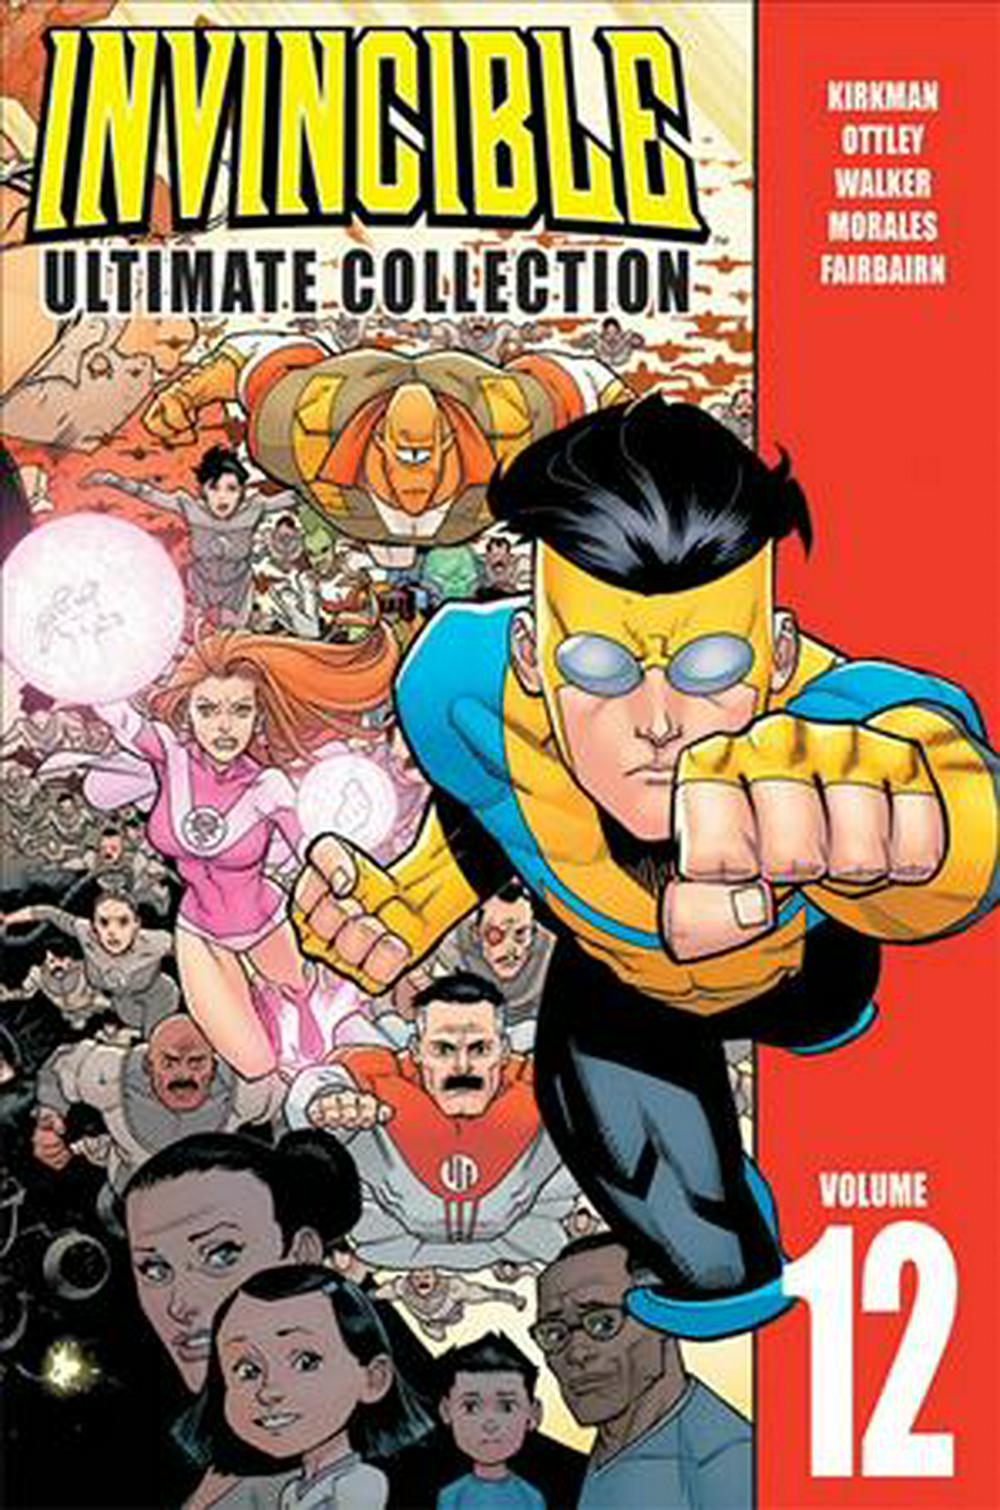 Invincible Ultimate Collection Volume 12 by Robert Kirkman, ISBN: 9781534306585